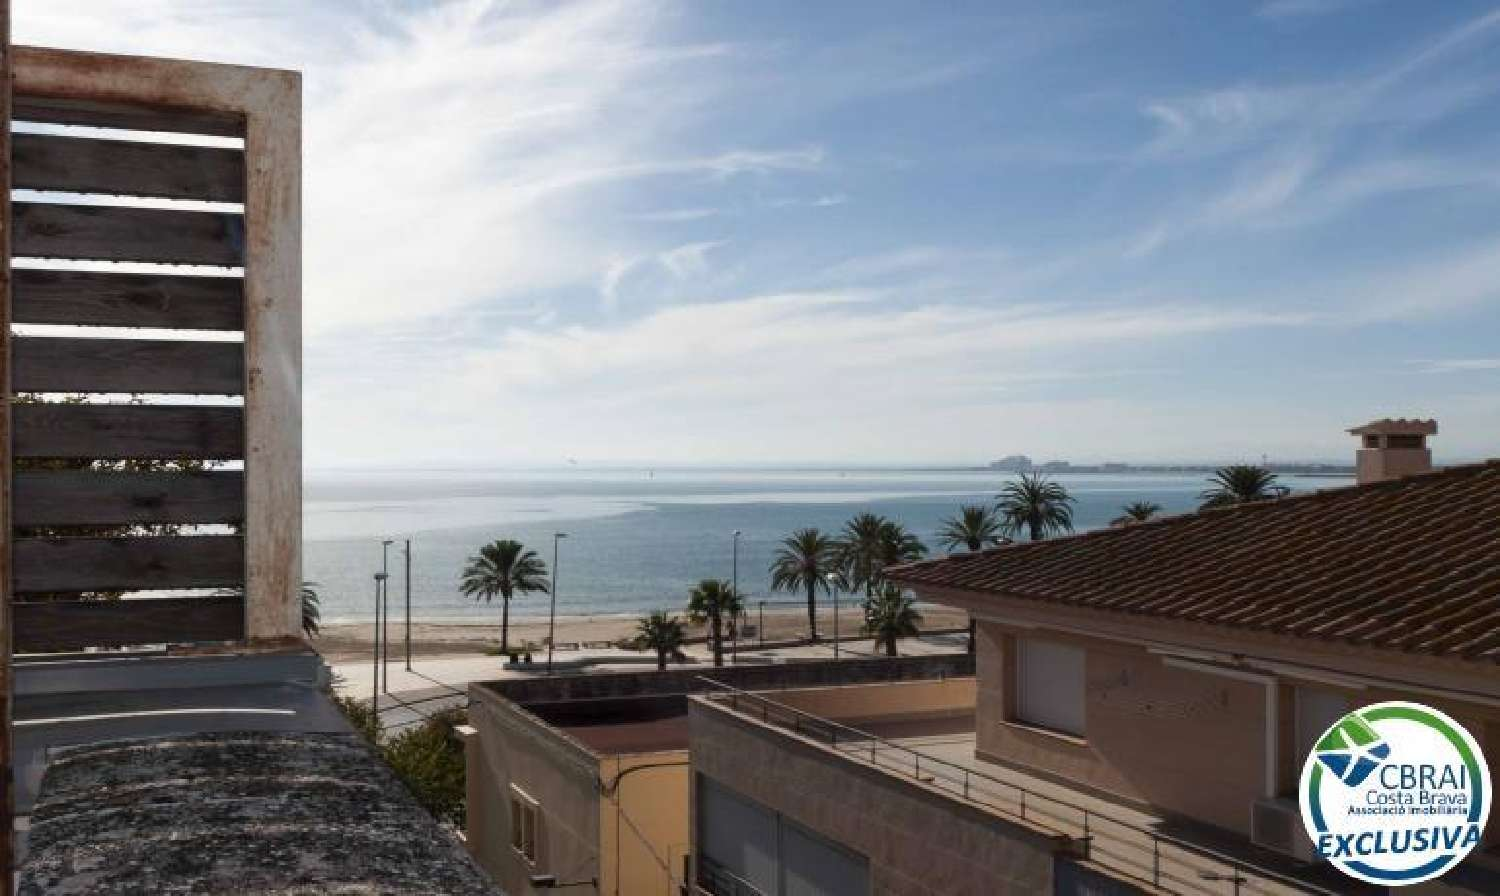 roses girona appartement foto 4645941